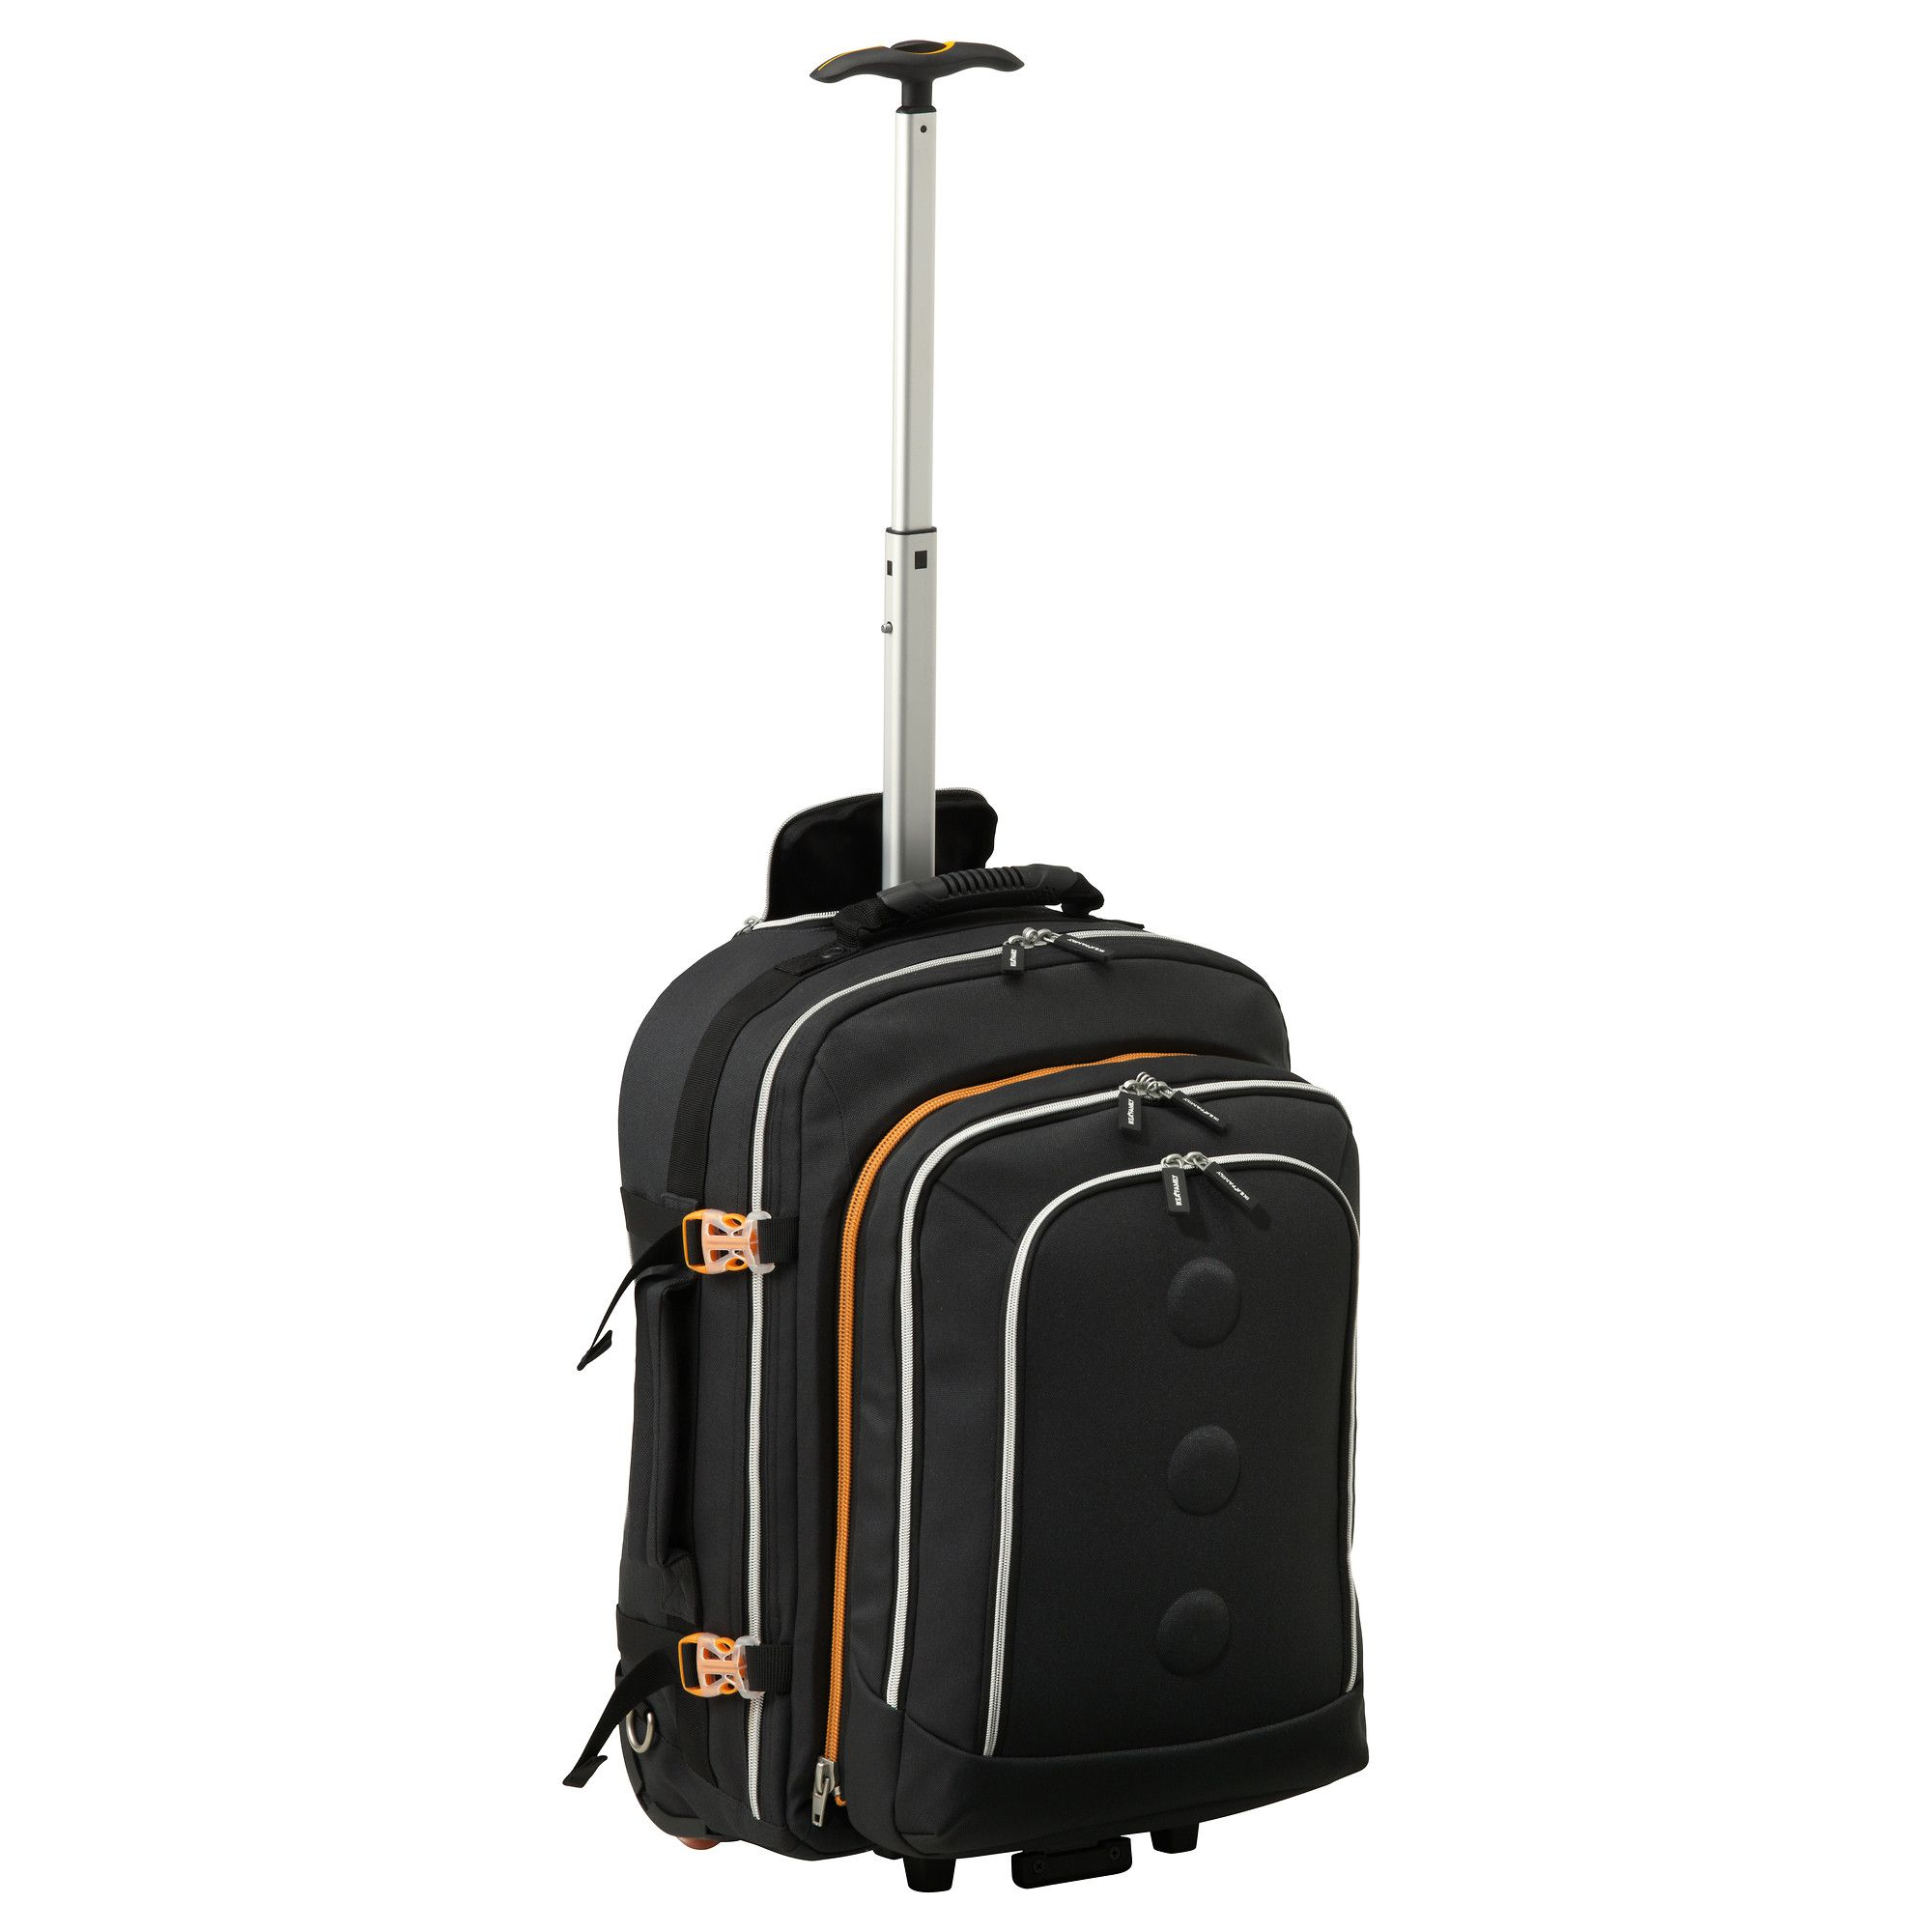 Uppt cka backpack on wheels dark gray ikea family for Ikea article number